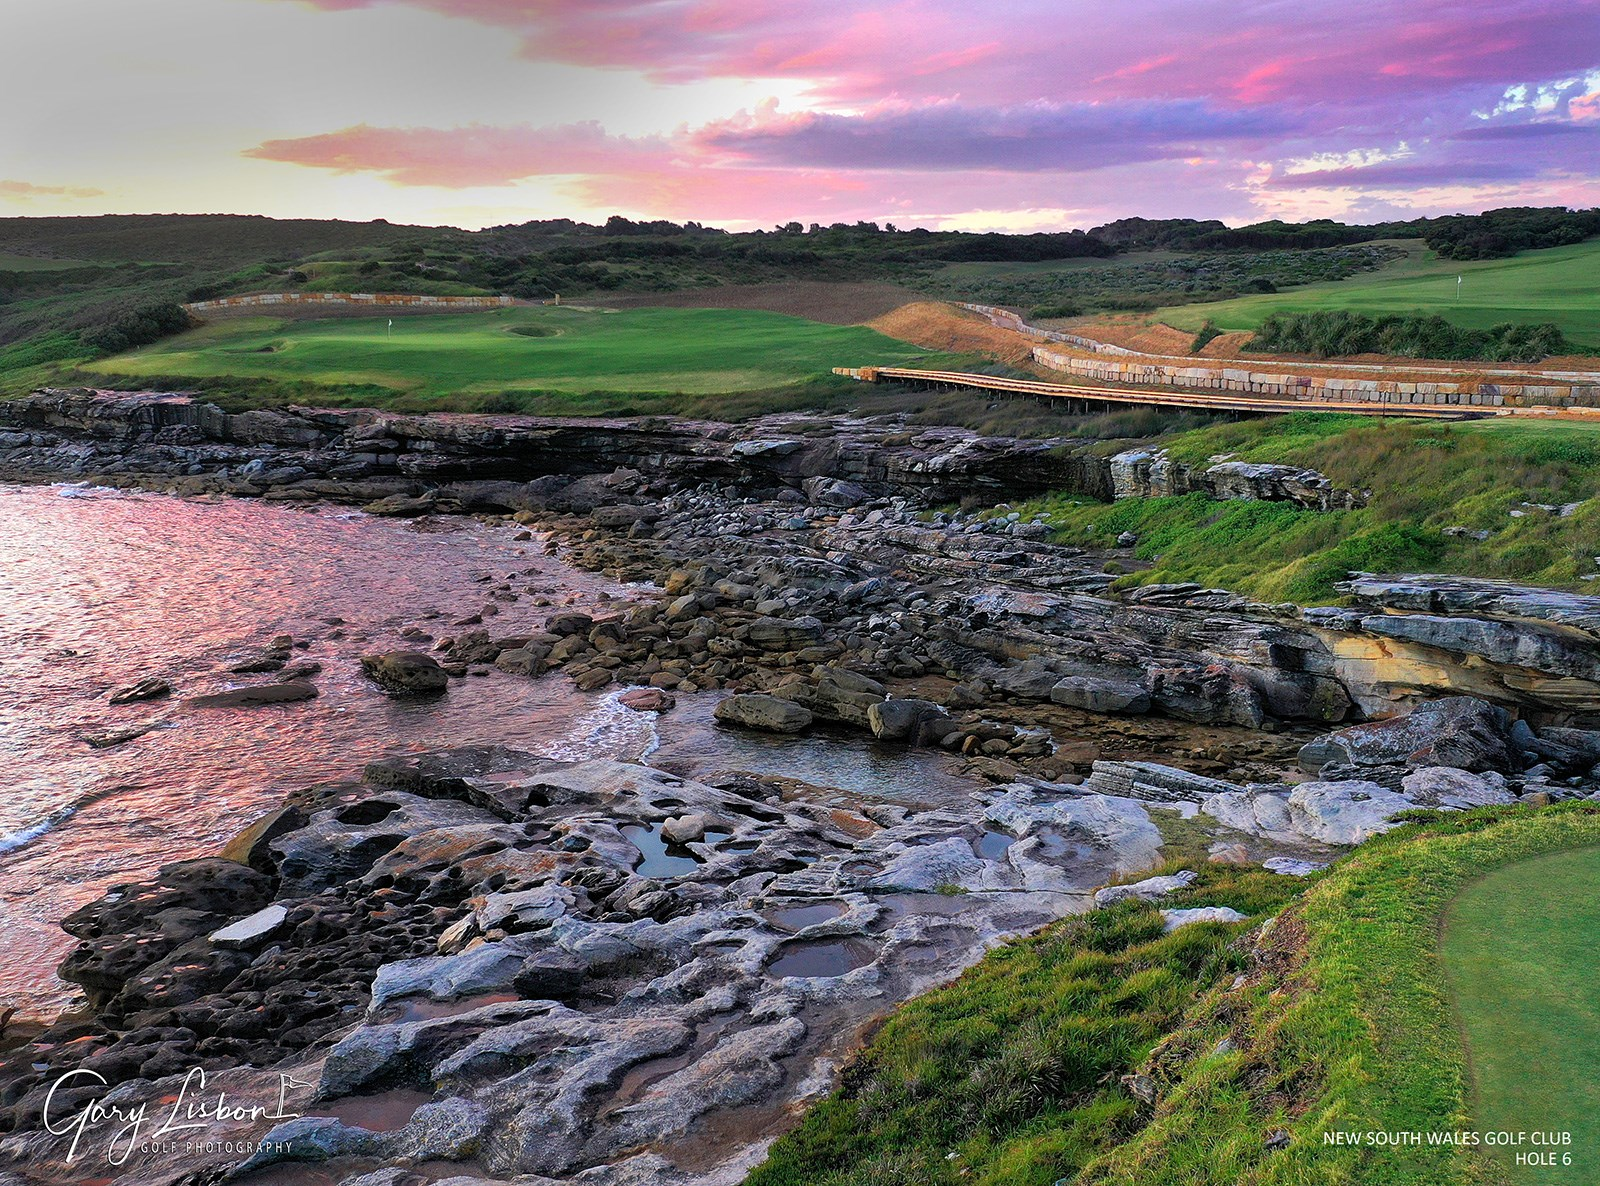 The New South Wales Golf Club Hole 6